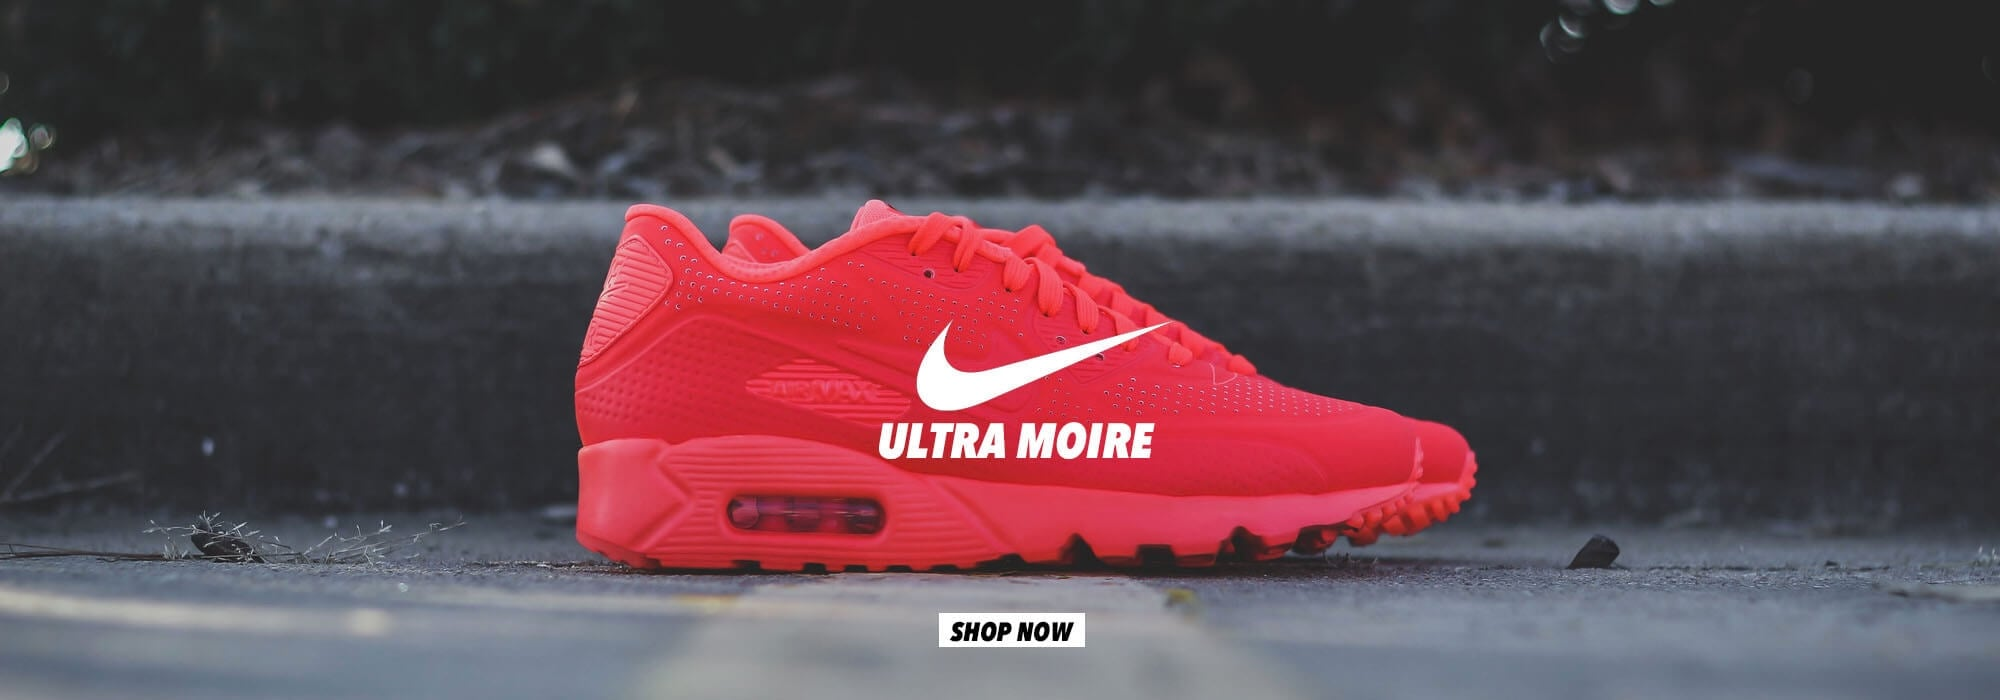 Nike Air Max 90 Ultra Moire - Crimson Red